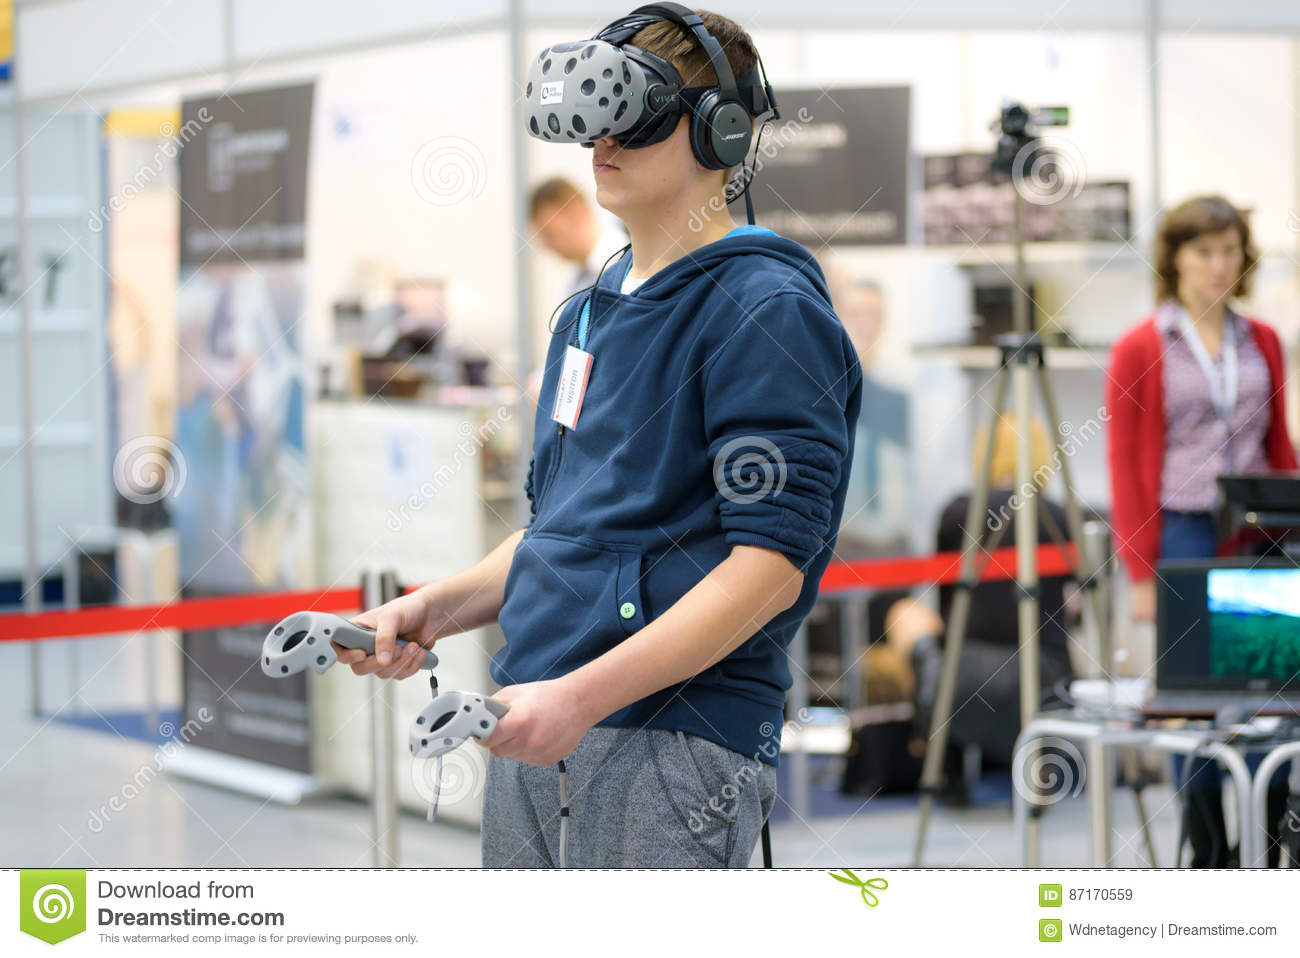 HTC VIVE - Virtual Reality System Editorial Stock Image - Image of